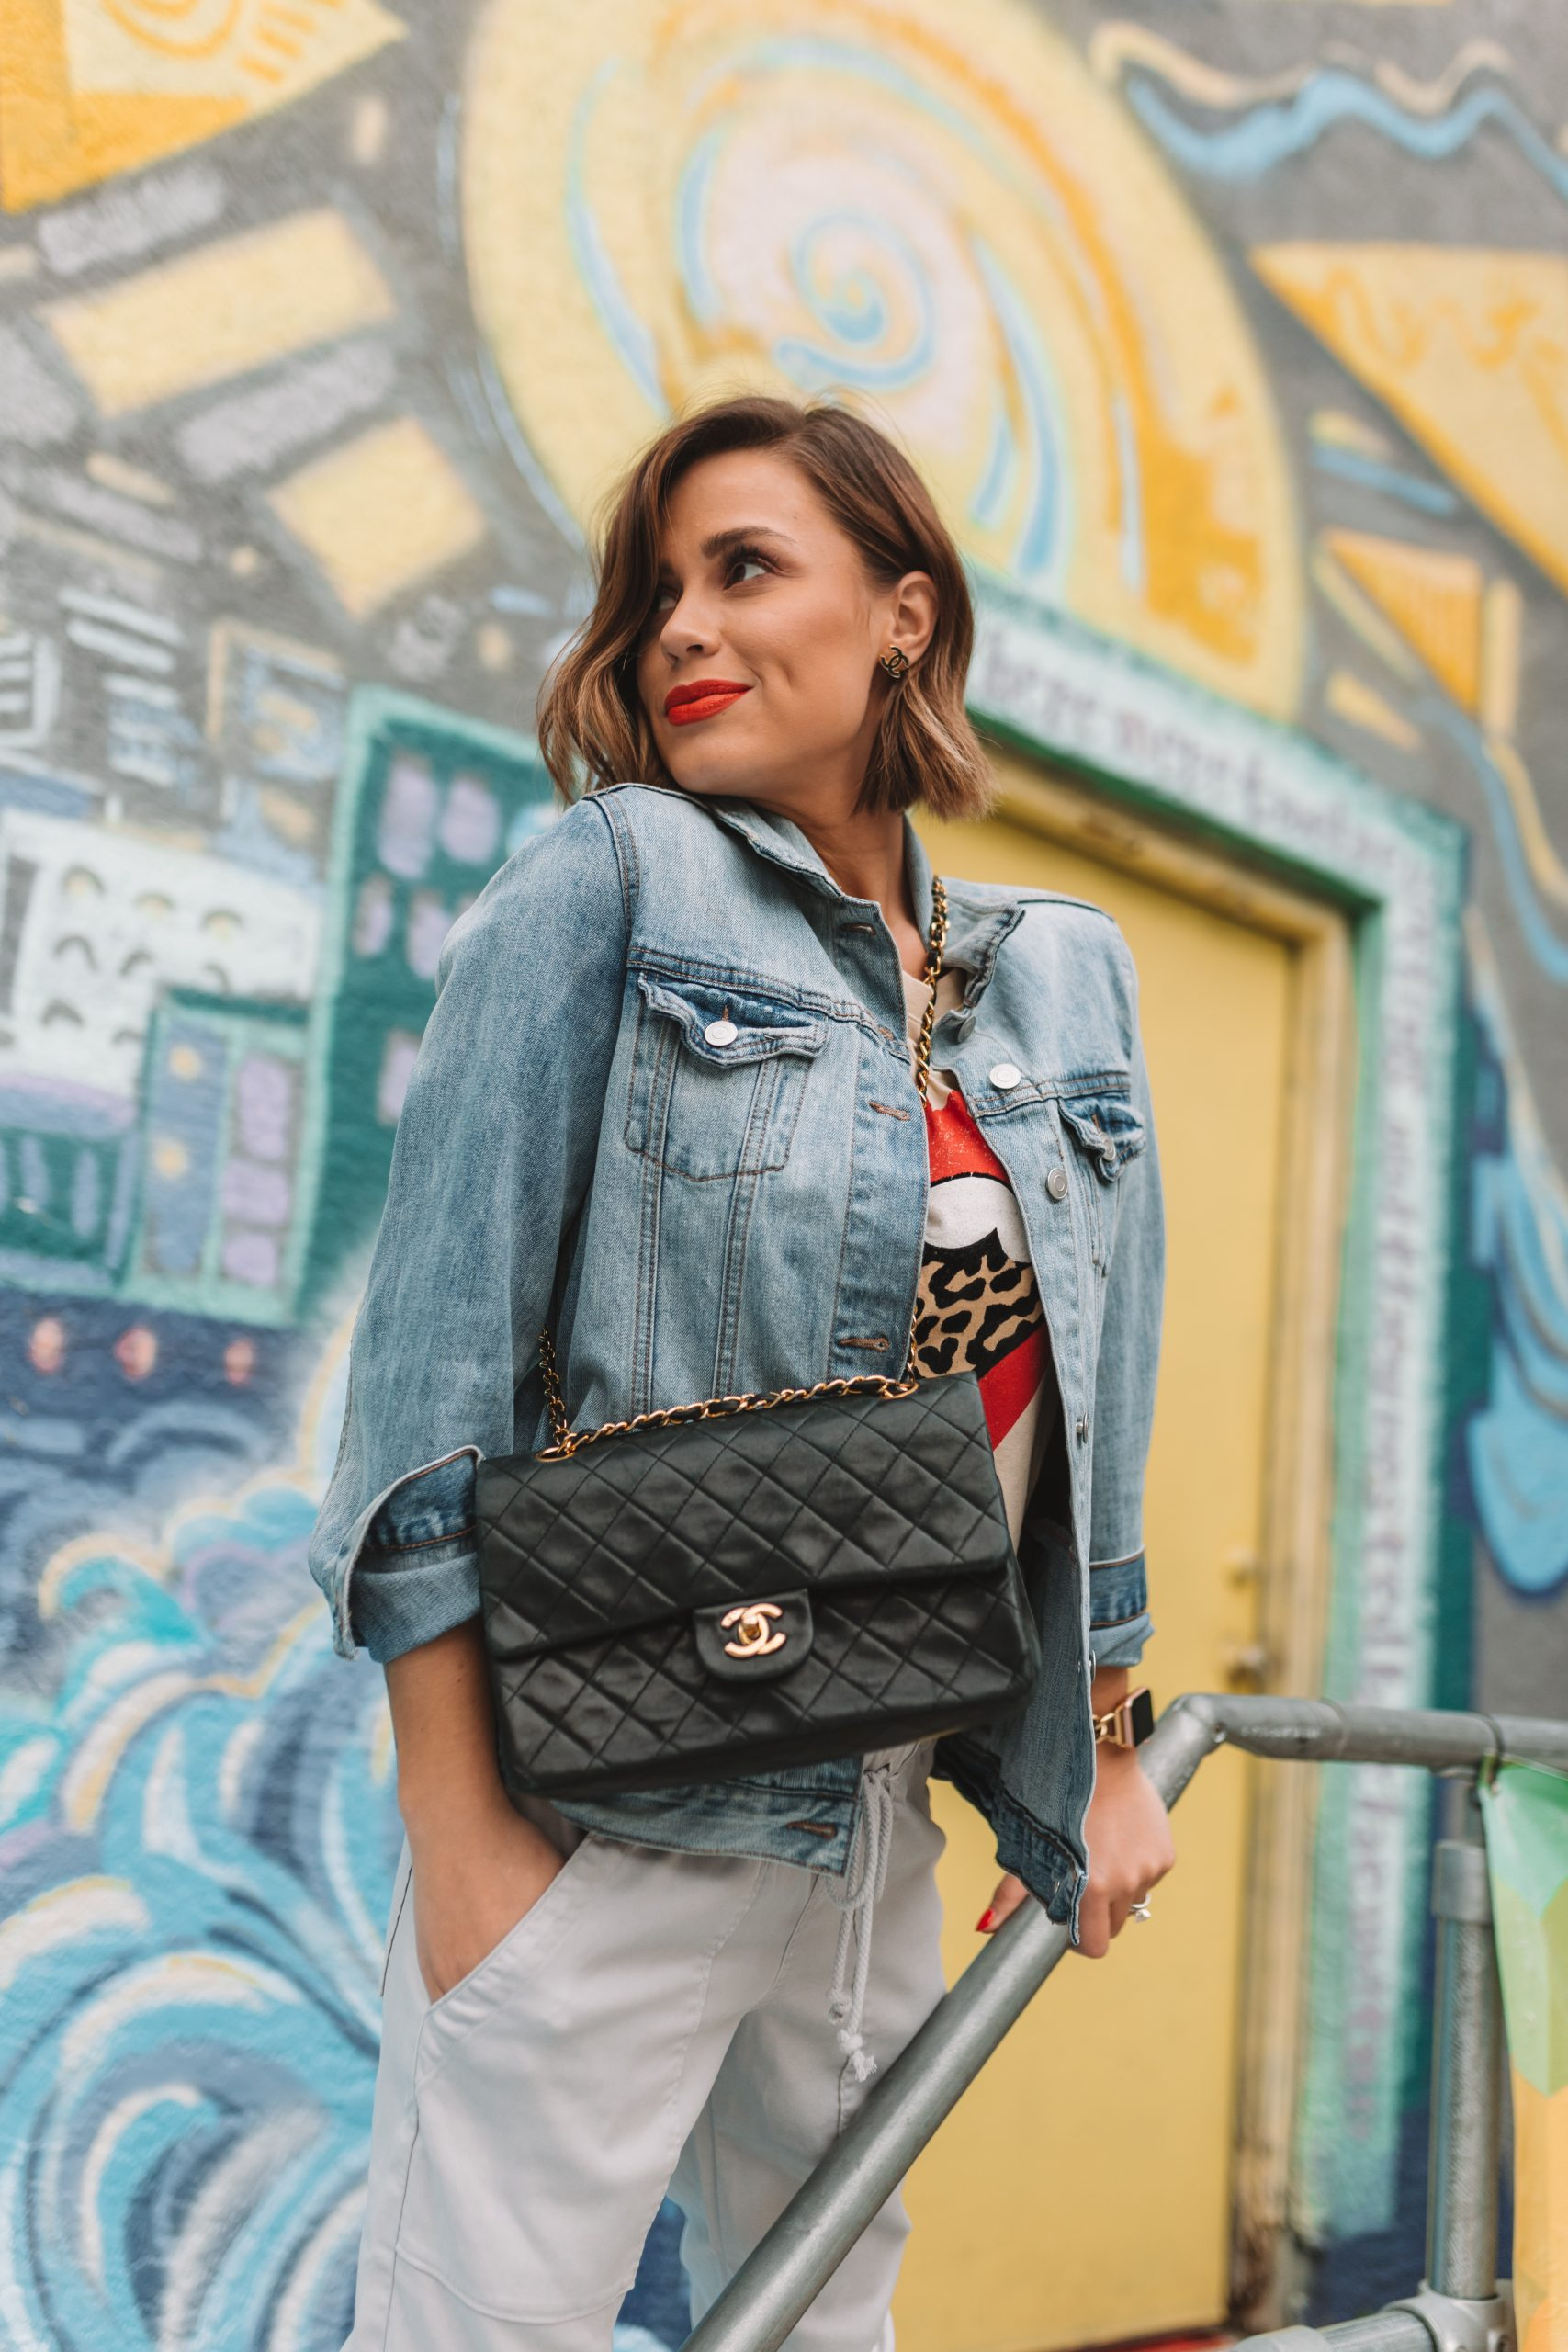 Elly Brown wears a vintage Chanel bag with matching vintage Chanel earrings